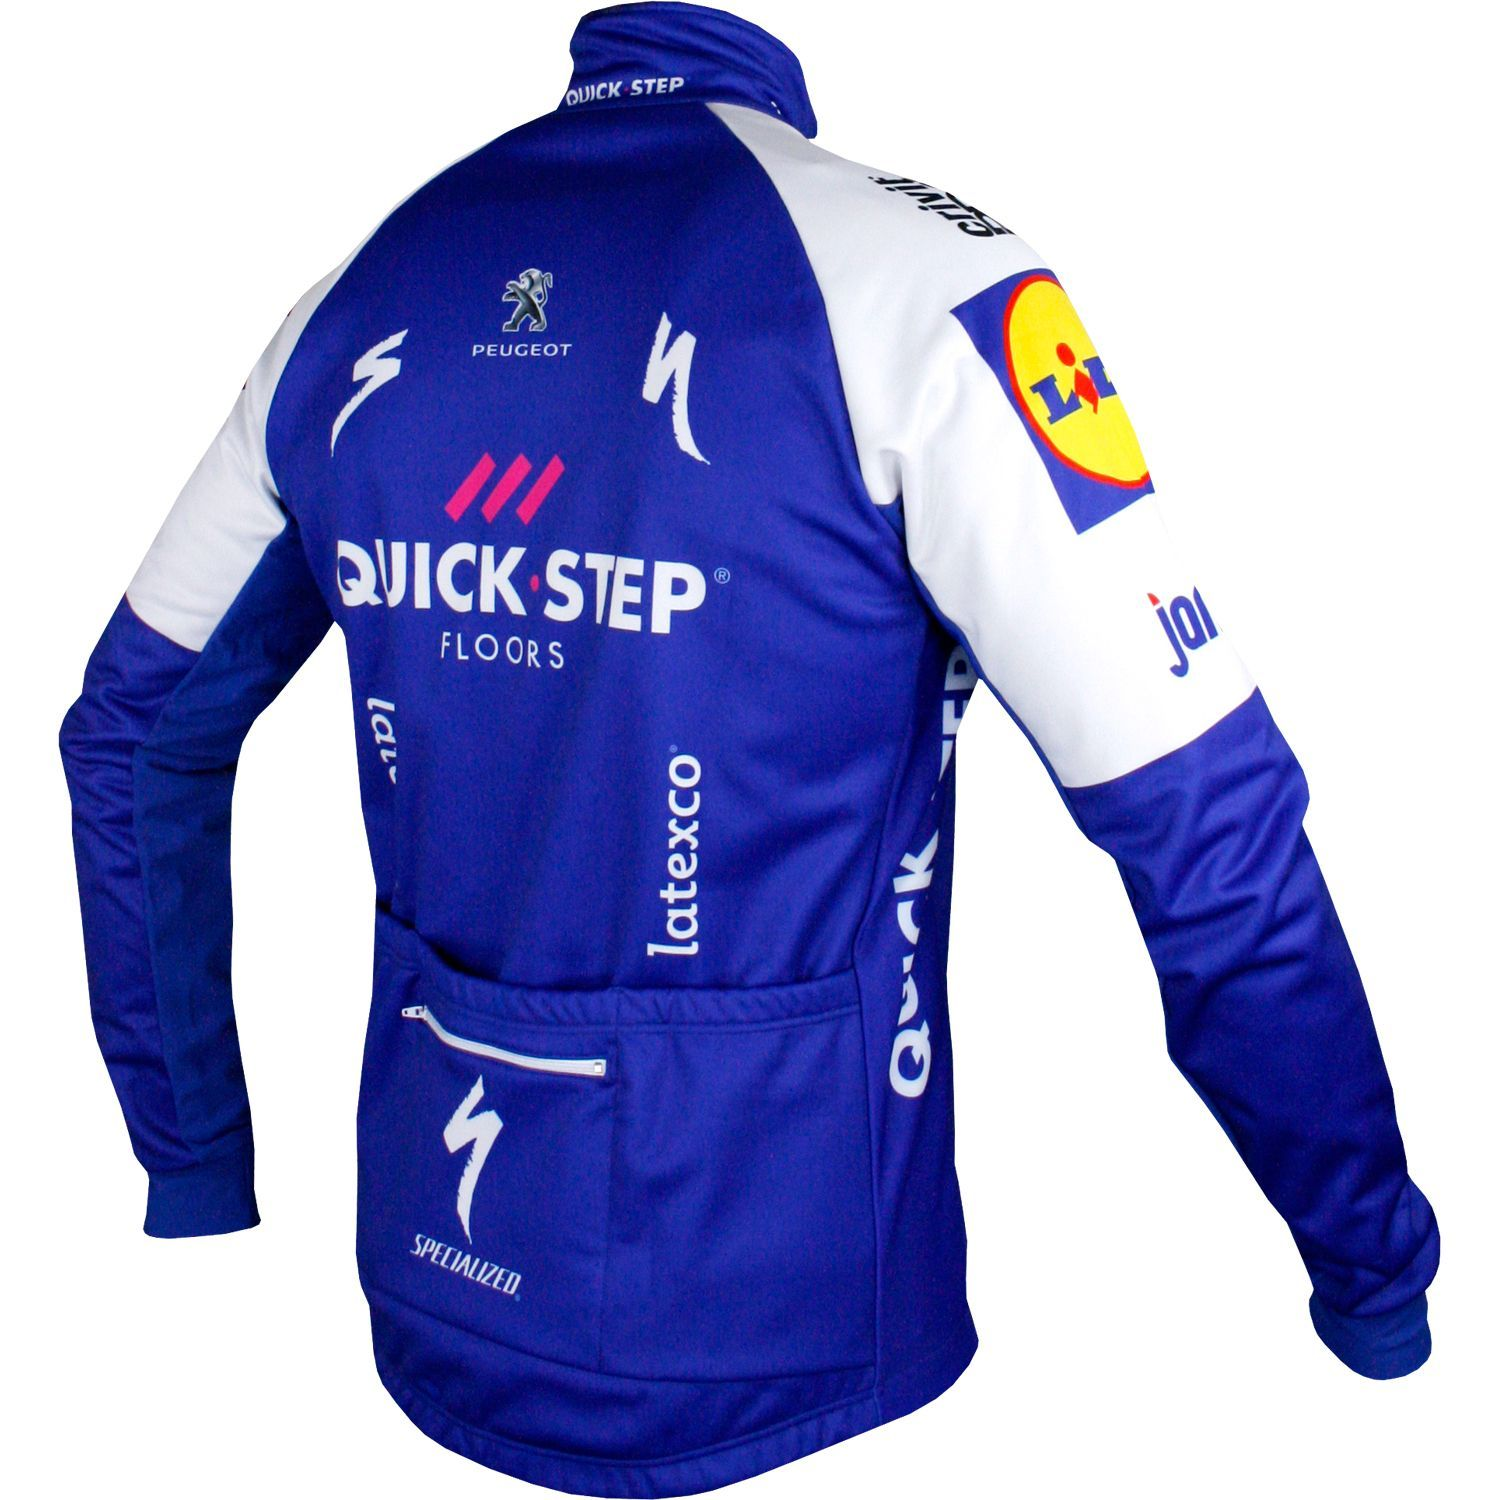 Trikotexpress quick step floors 2017 winter cycling for Quick step floors cycling team